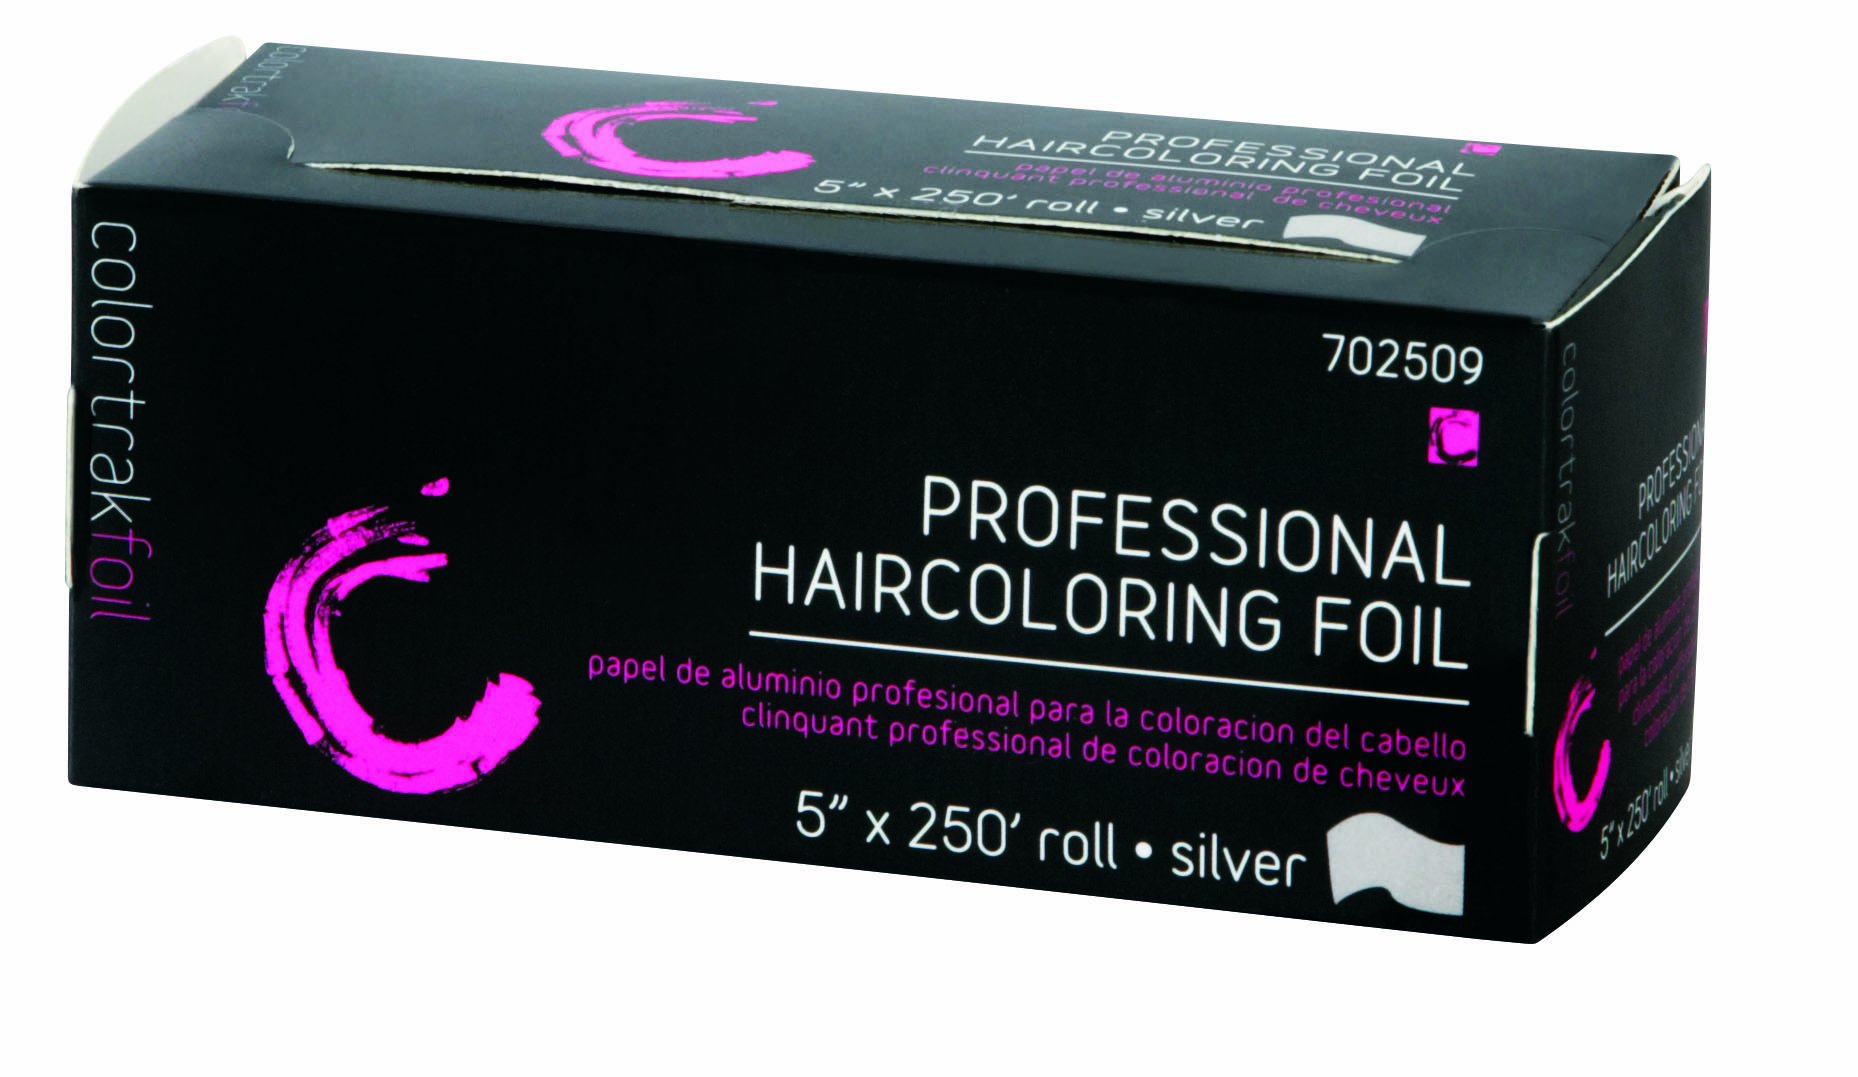 Colortrak Professional Highlighting Foil, Silver (Pack of 2 5'' x 250ft Rolls) by Colortrak